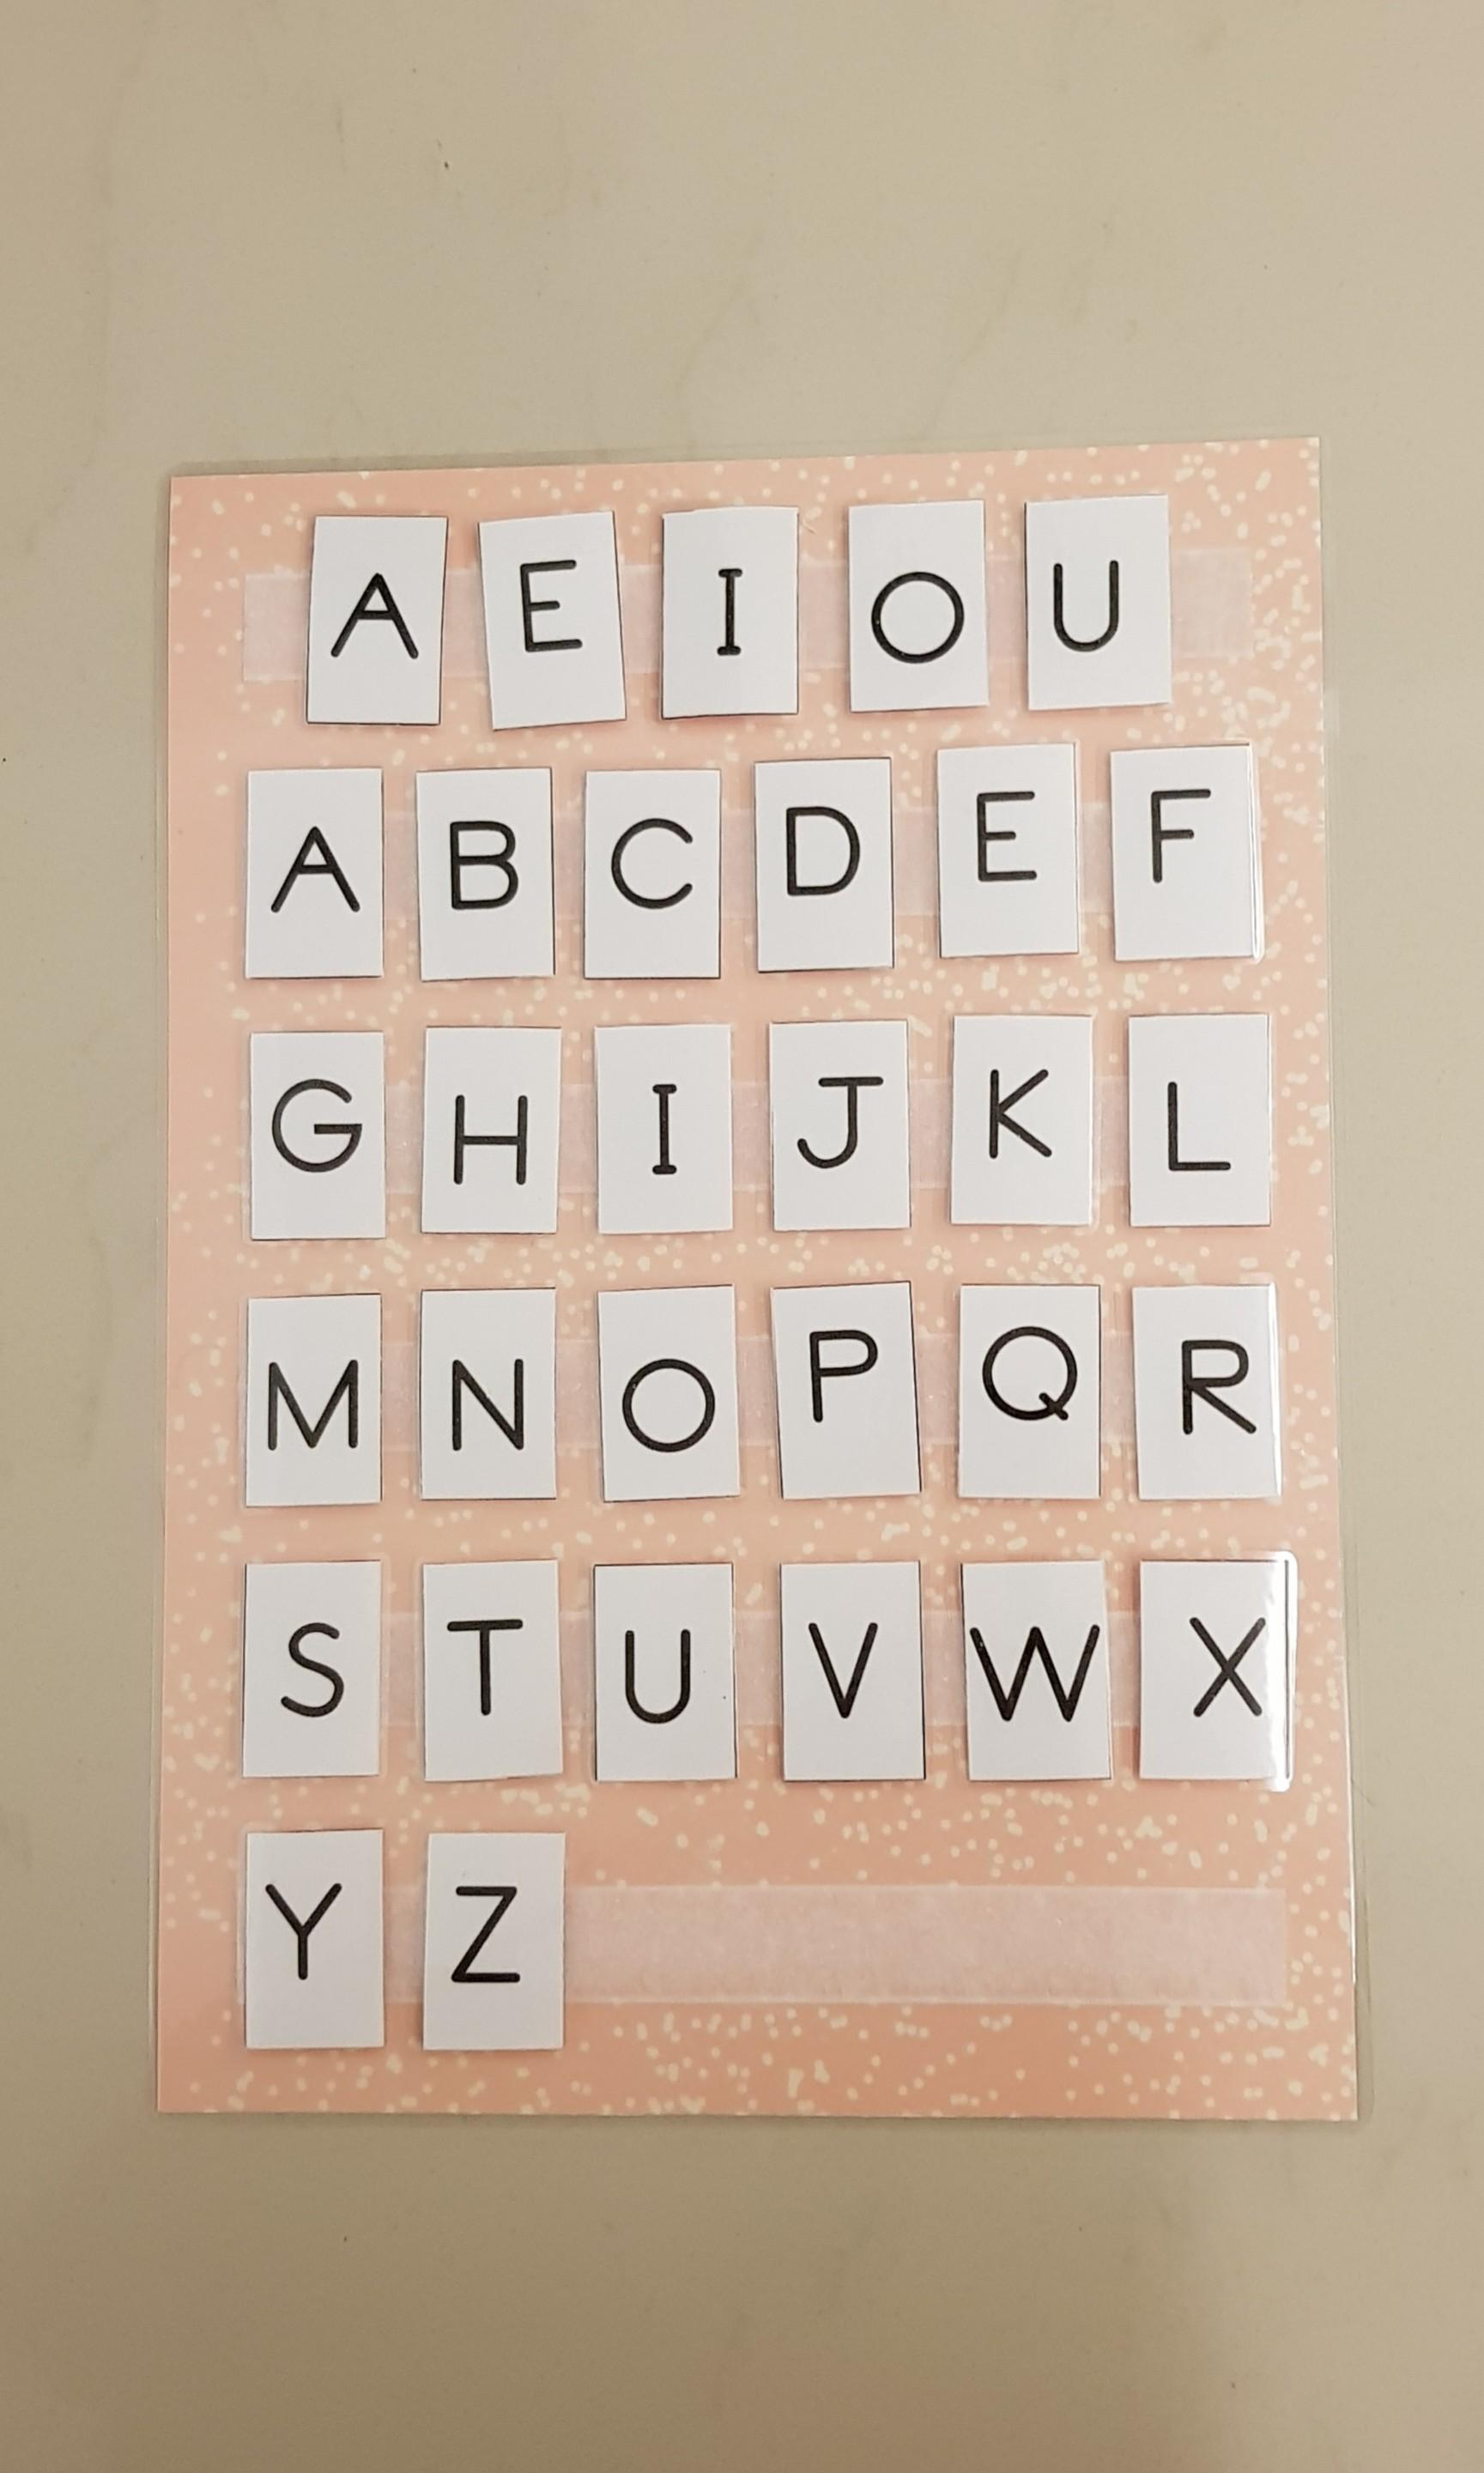 Learning Alphabet Diy Abc Chart Babies Kids Toys Walkers On Carousell These abc charts have been designed with popular themes to help convey phonics sound for the 26 letters of the alphabet. sgd